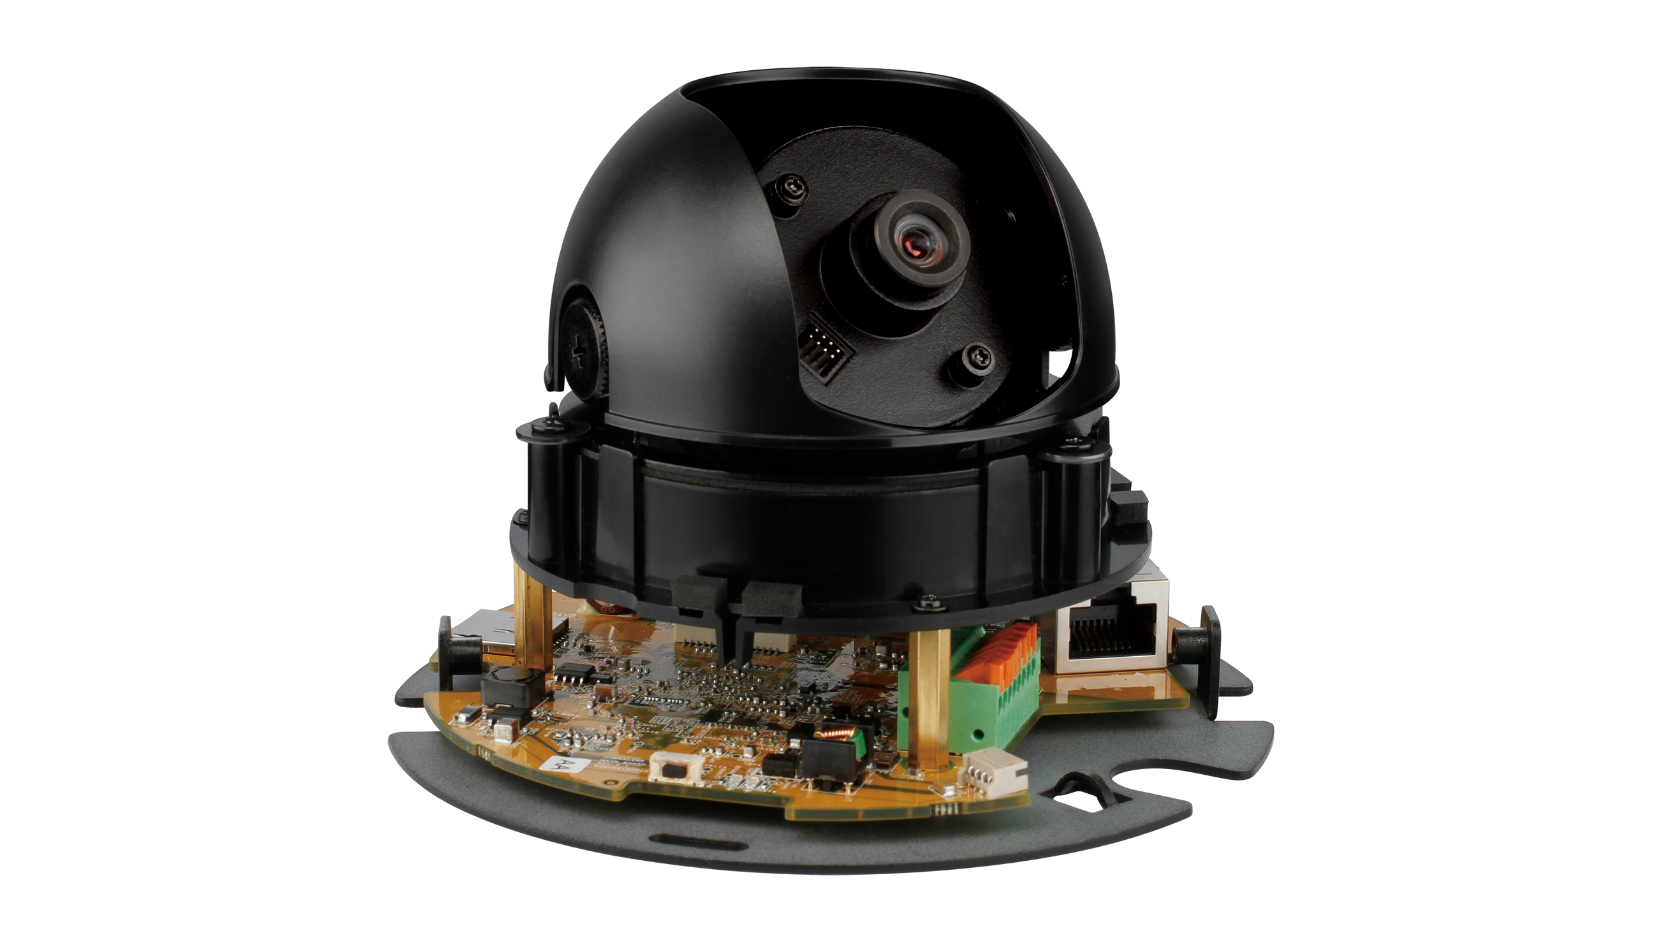 D-Link DCS-6113 Rev.B IP Camera Drivers PC